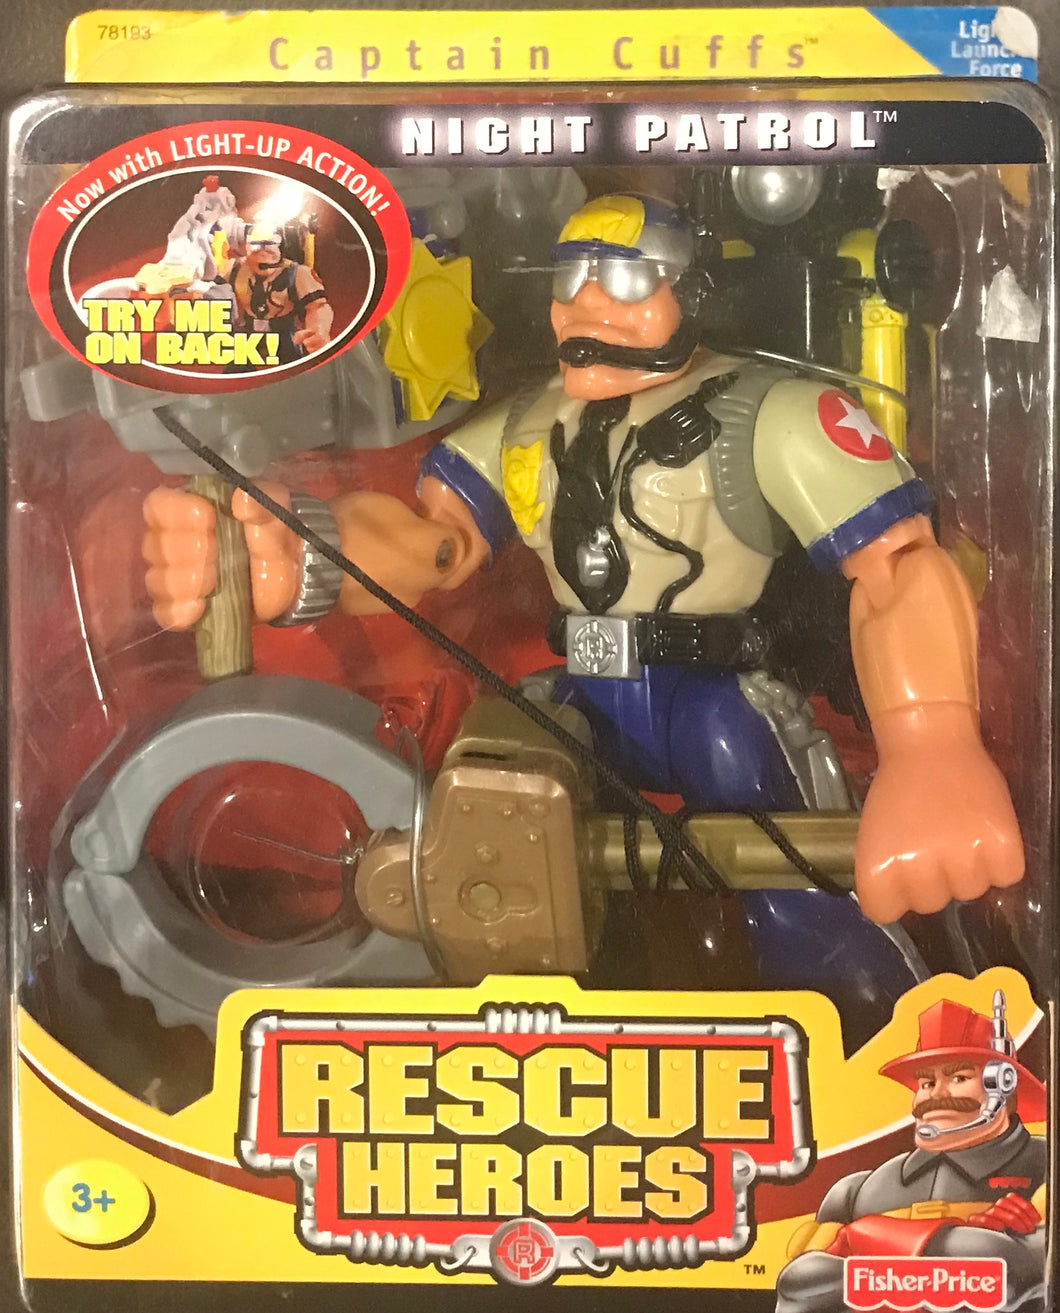 Fisher Price Rescue Heroes Captain Cuffs Night Patrol